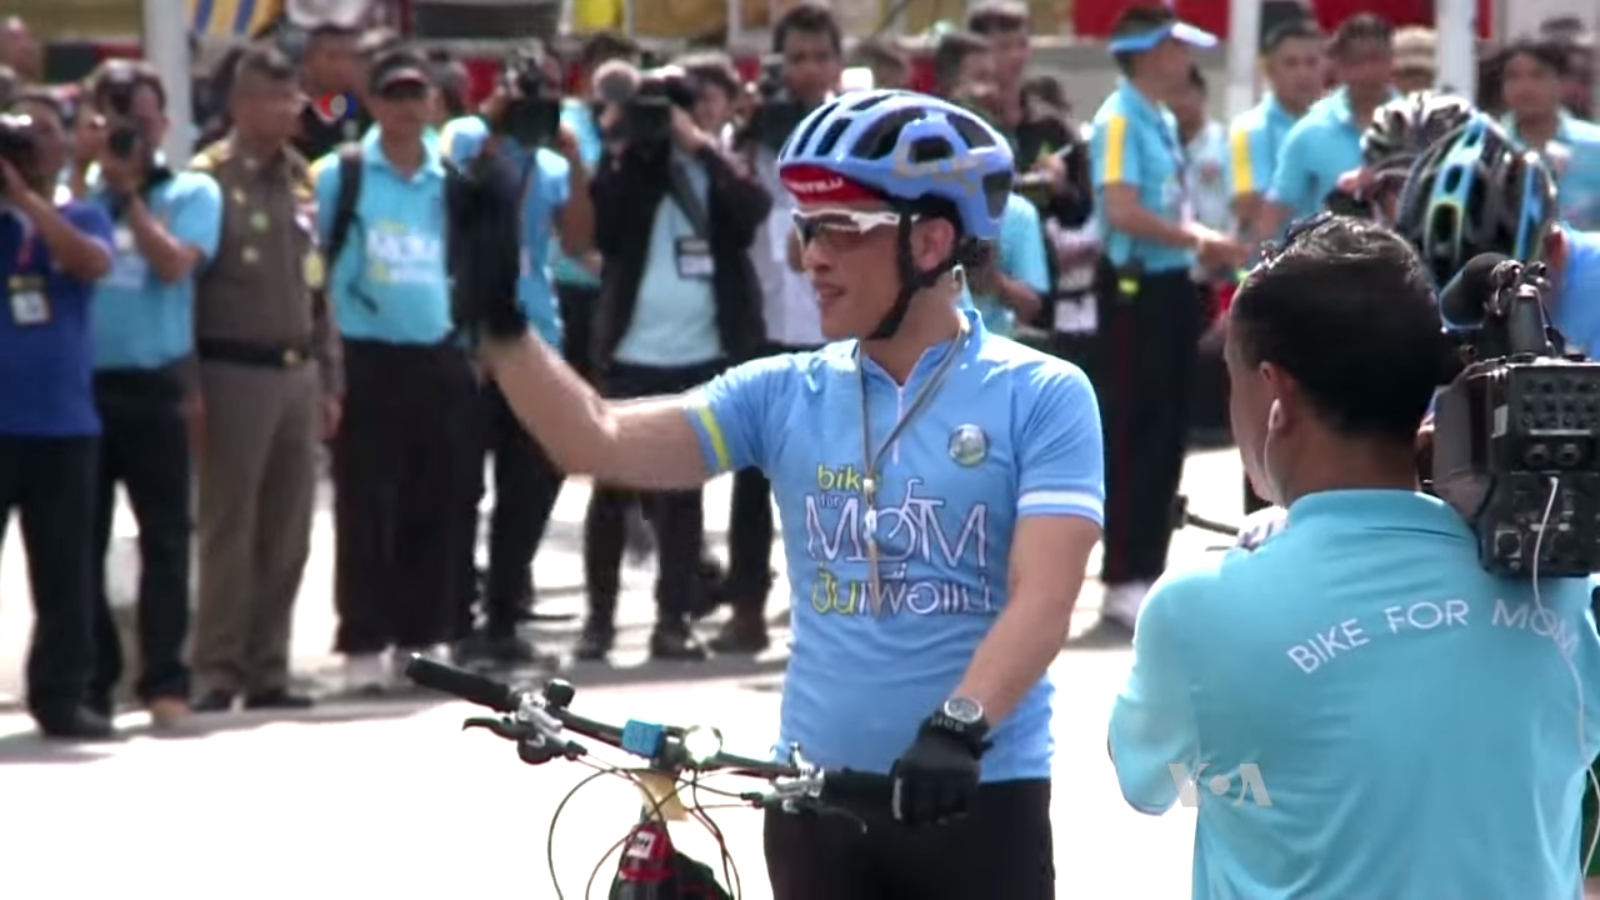 Vajiralongkorn leading cyclists at the Bike for Mom event in Bangkok on August 17, 2015.